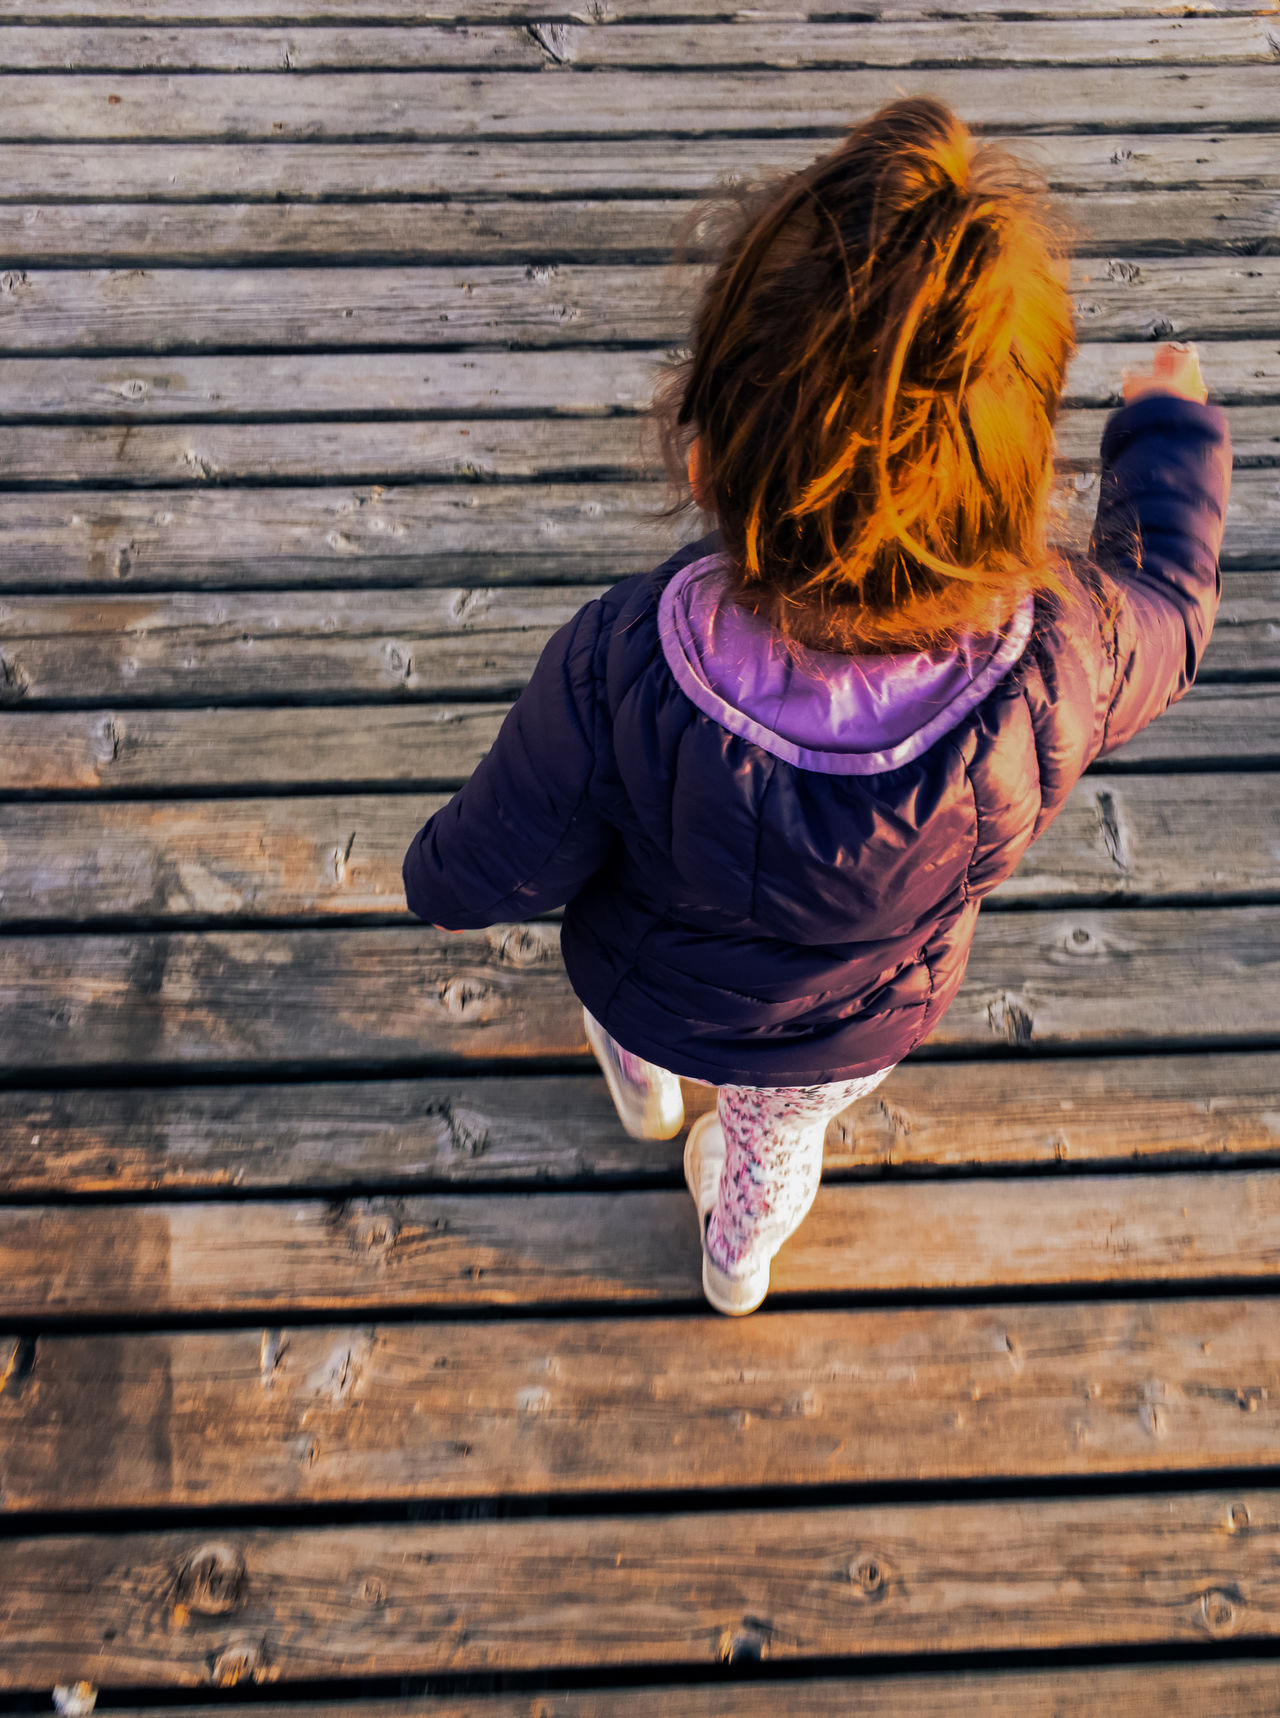 Small girl with orange hair on boardwalk top view Adorable Boardwalk Carefree Caucasian Child Childhood Cute Day Girl Hair Kid Leisure Activity Lifestyles Little Marine One Person Orange Outdoors People Pier Rear View Sea Small Wooden